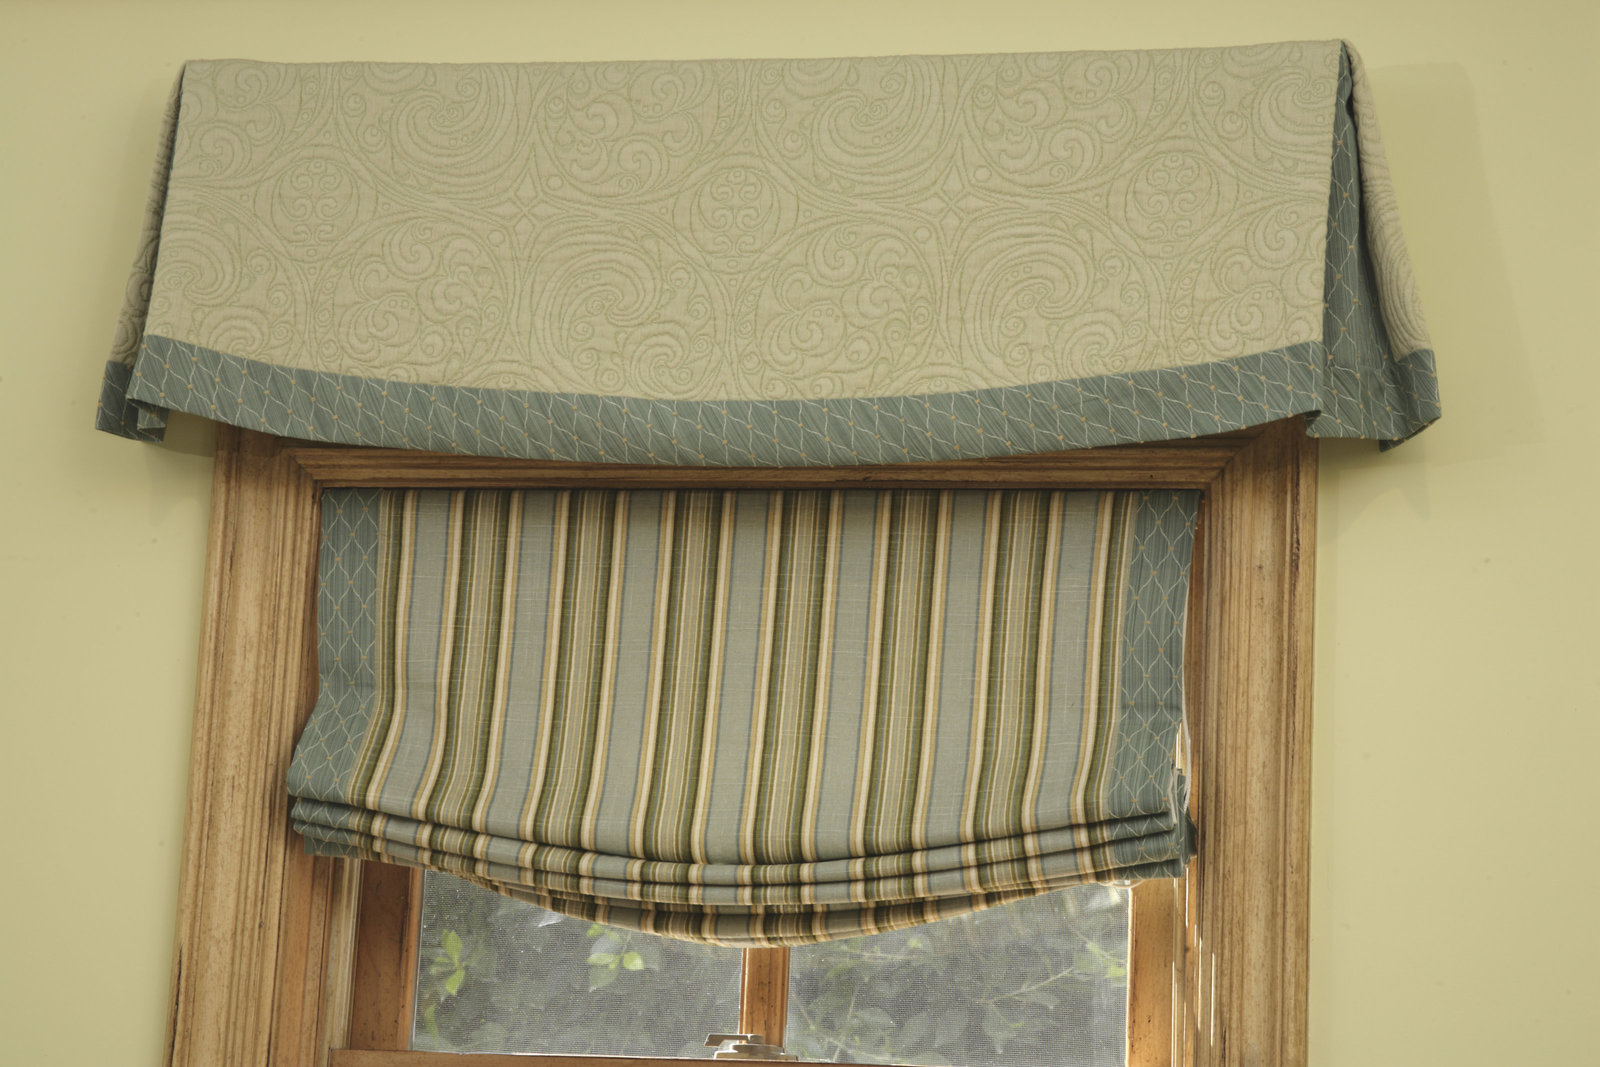 Encino Estate Estate Den Window Treatments